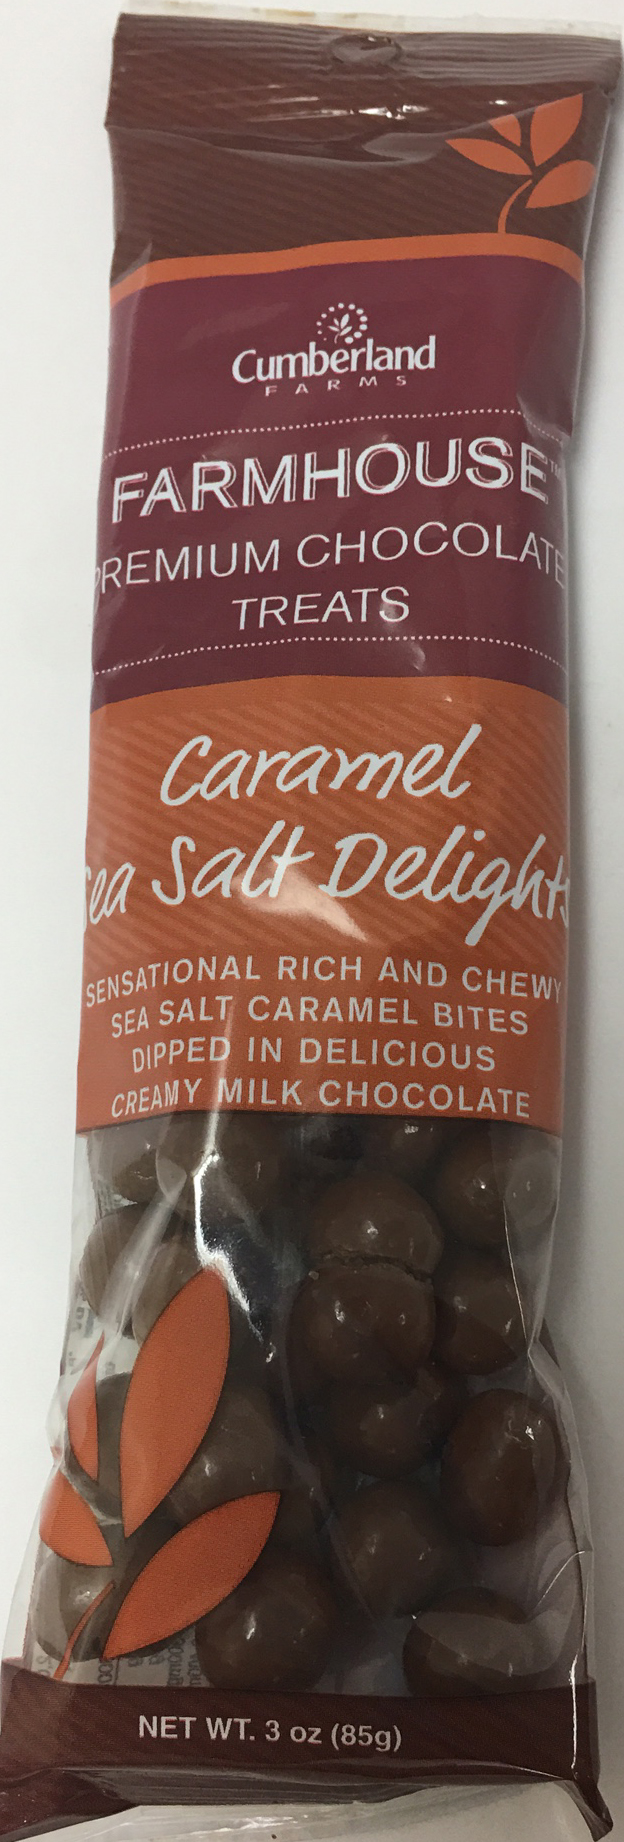 Cumberland Farms Announces Voluntary Recall of its Sea Salt Caramel Delights Flavor of Cumberland Farms Premium Chocolate Treats Due to Possible Presence of Peanuts